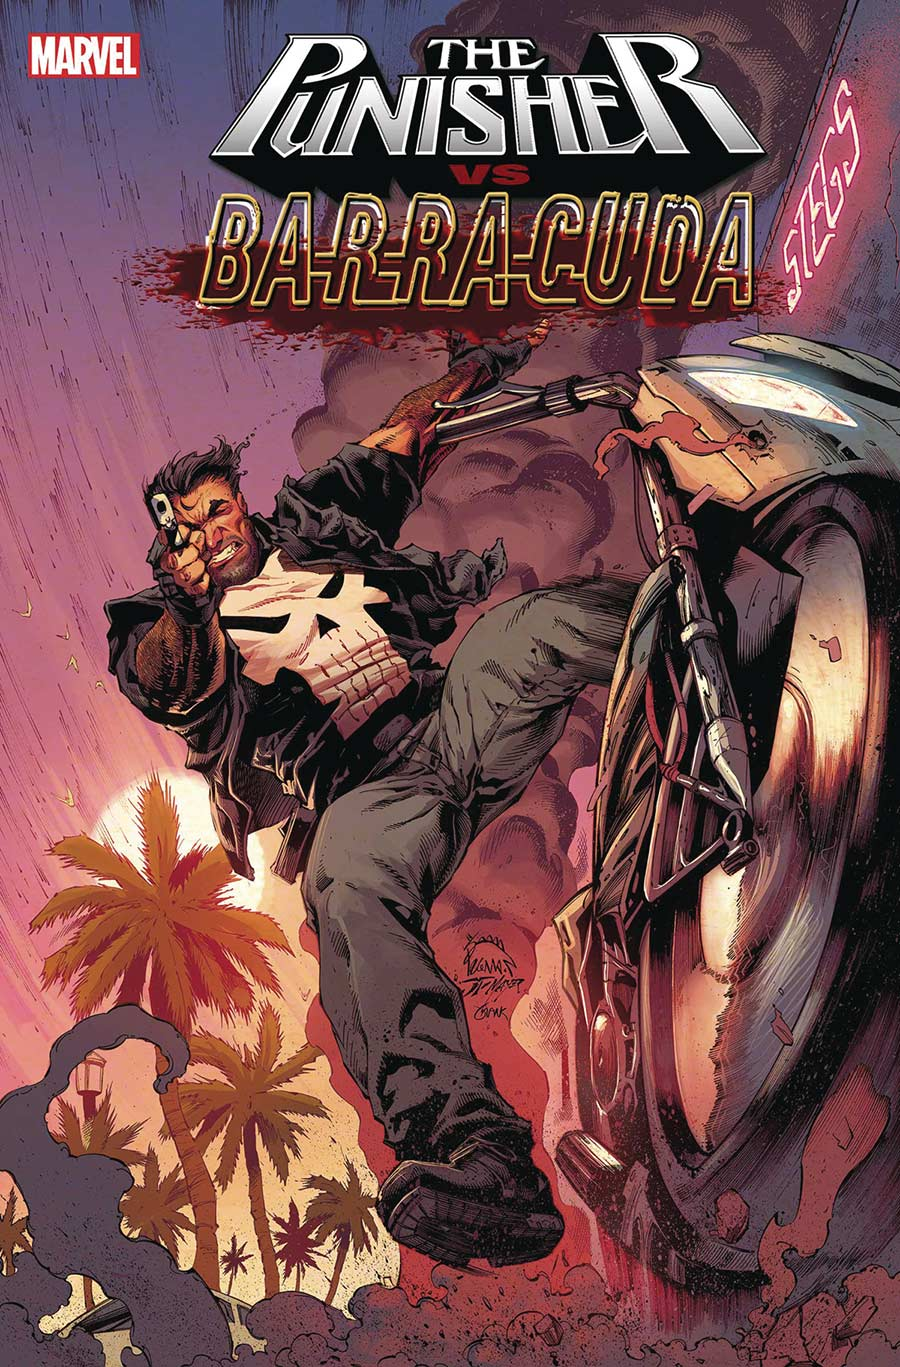 The Punisher Vs Barracuda